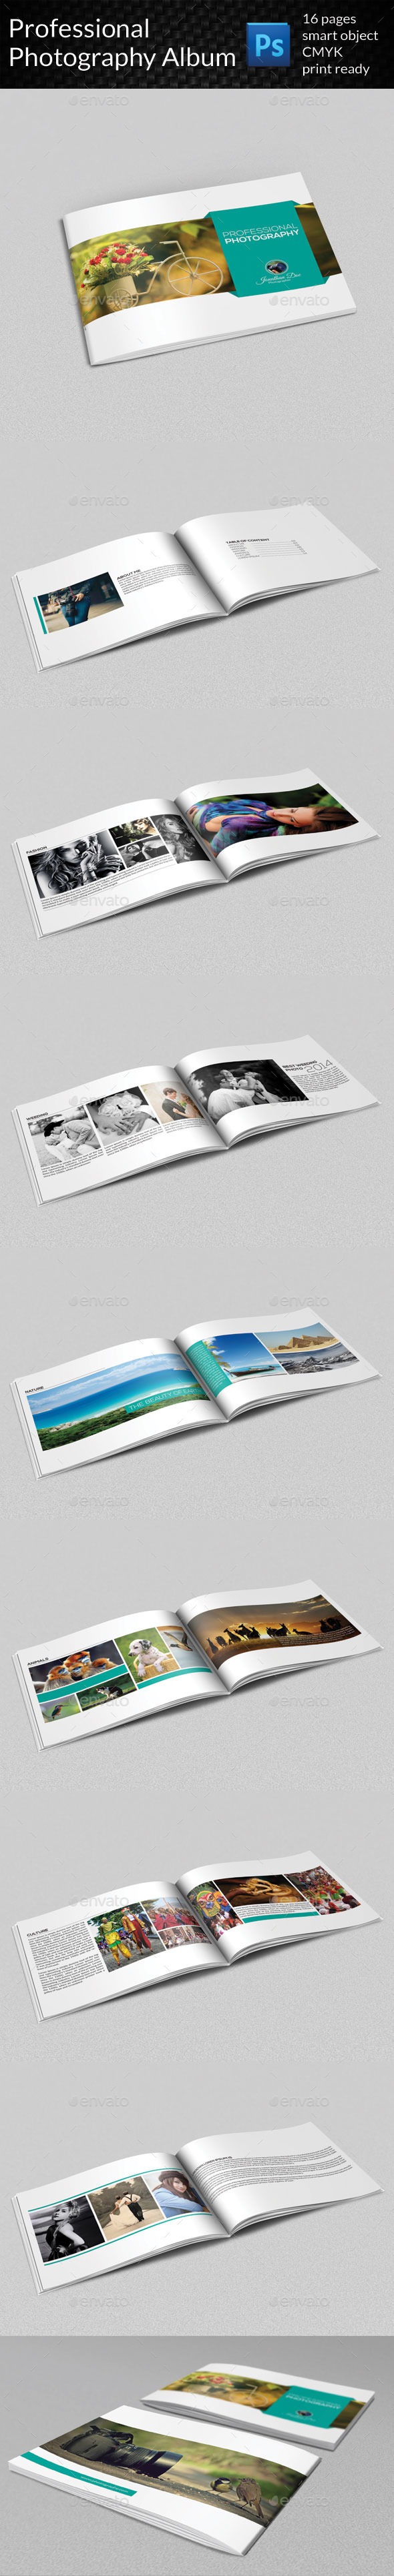 Professional Photography Album - Photo Albums Print Templates